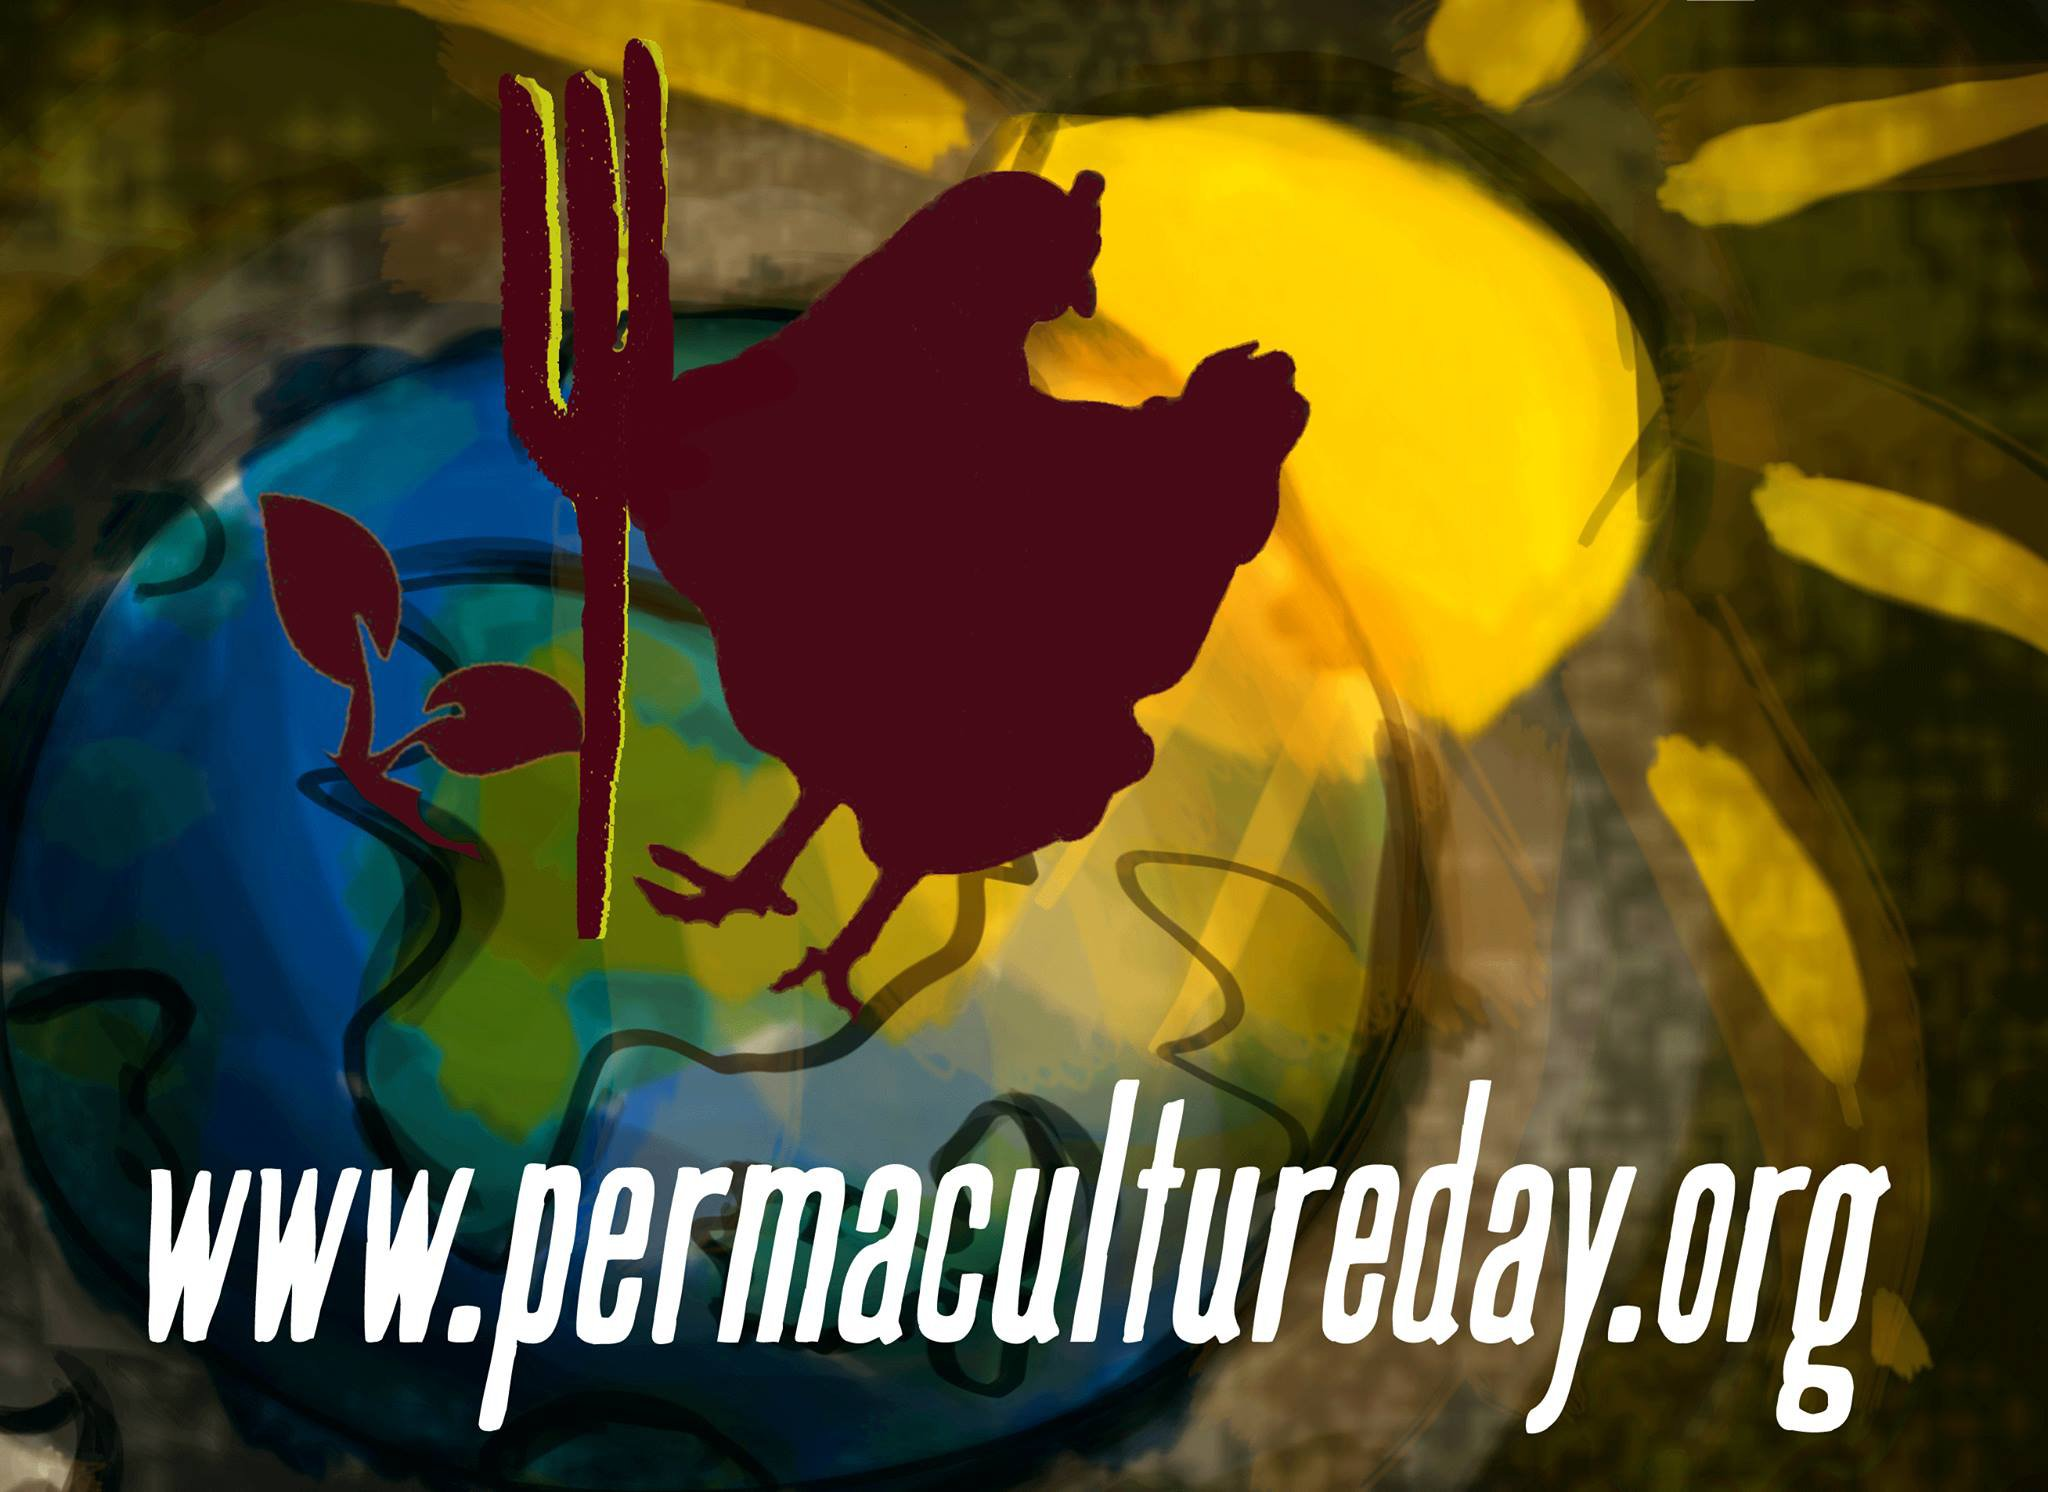 permacultureday.org chook and pitchfork resolute to save the day